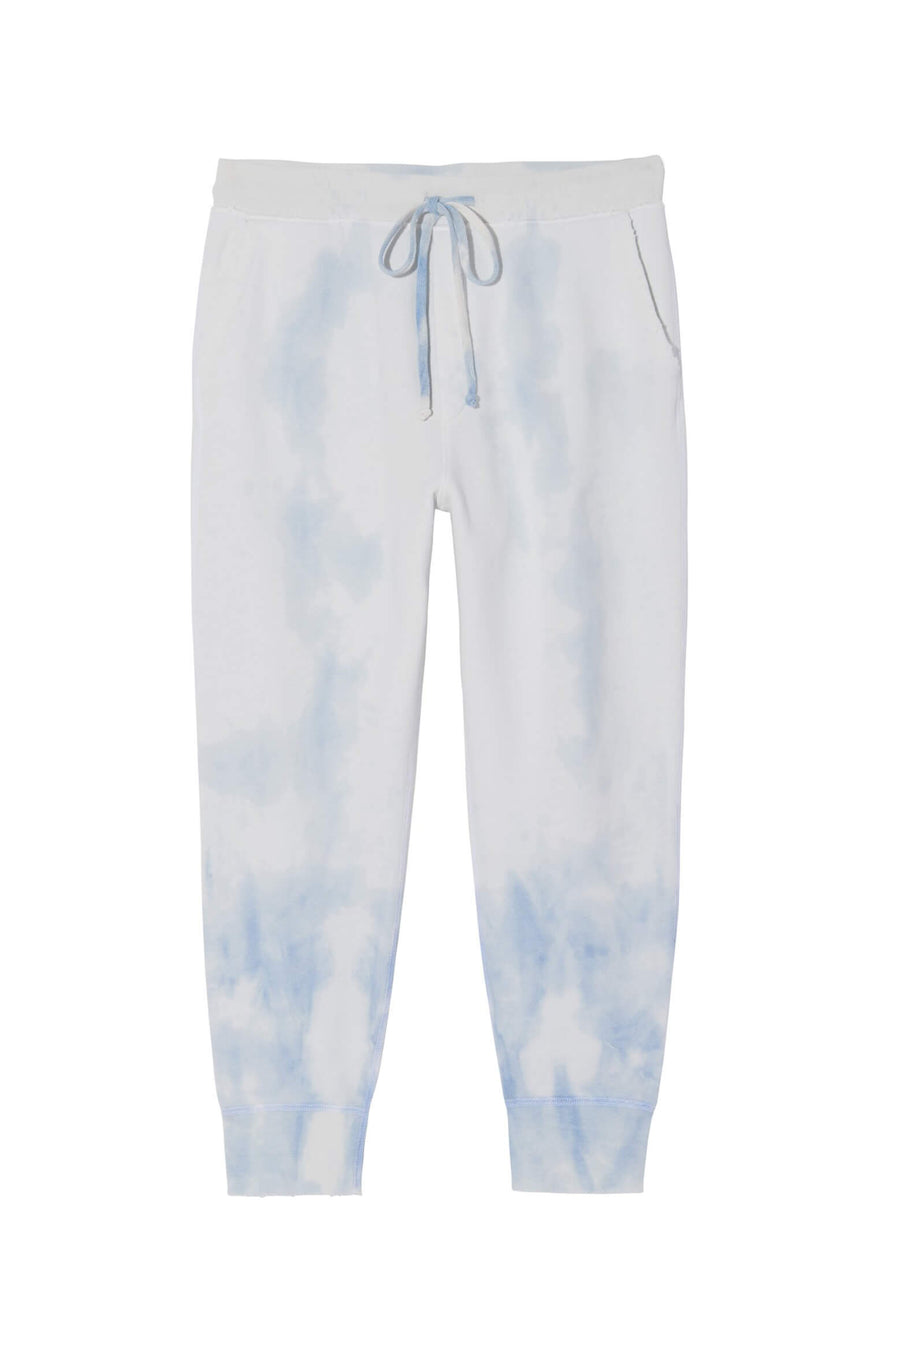 Nili Lotan Nolan Pant in Blue Tie Dye from The New Trend